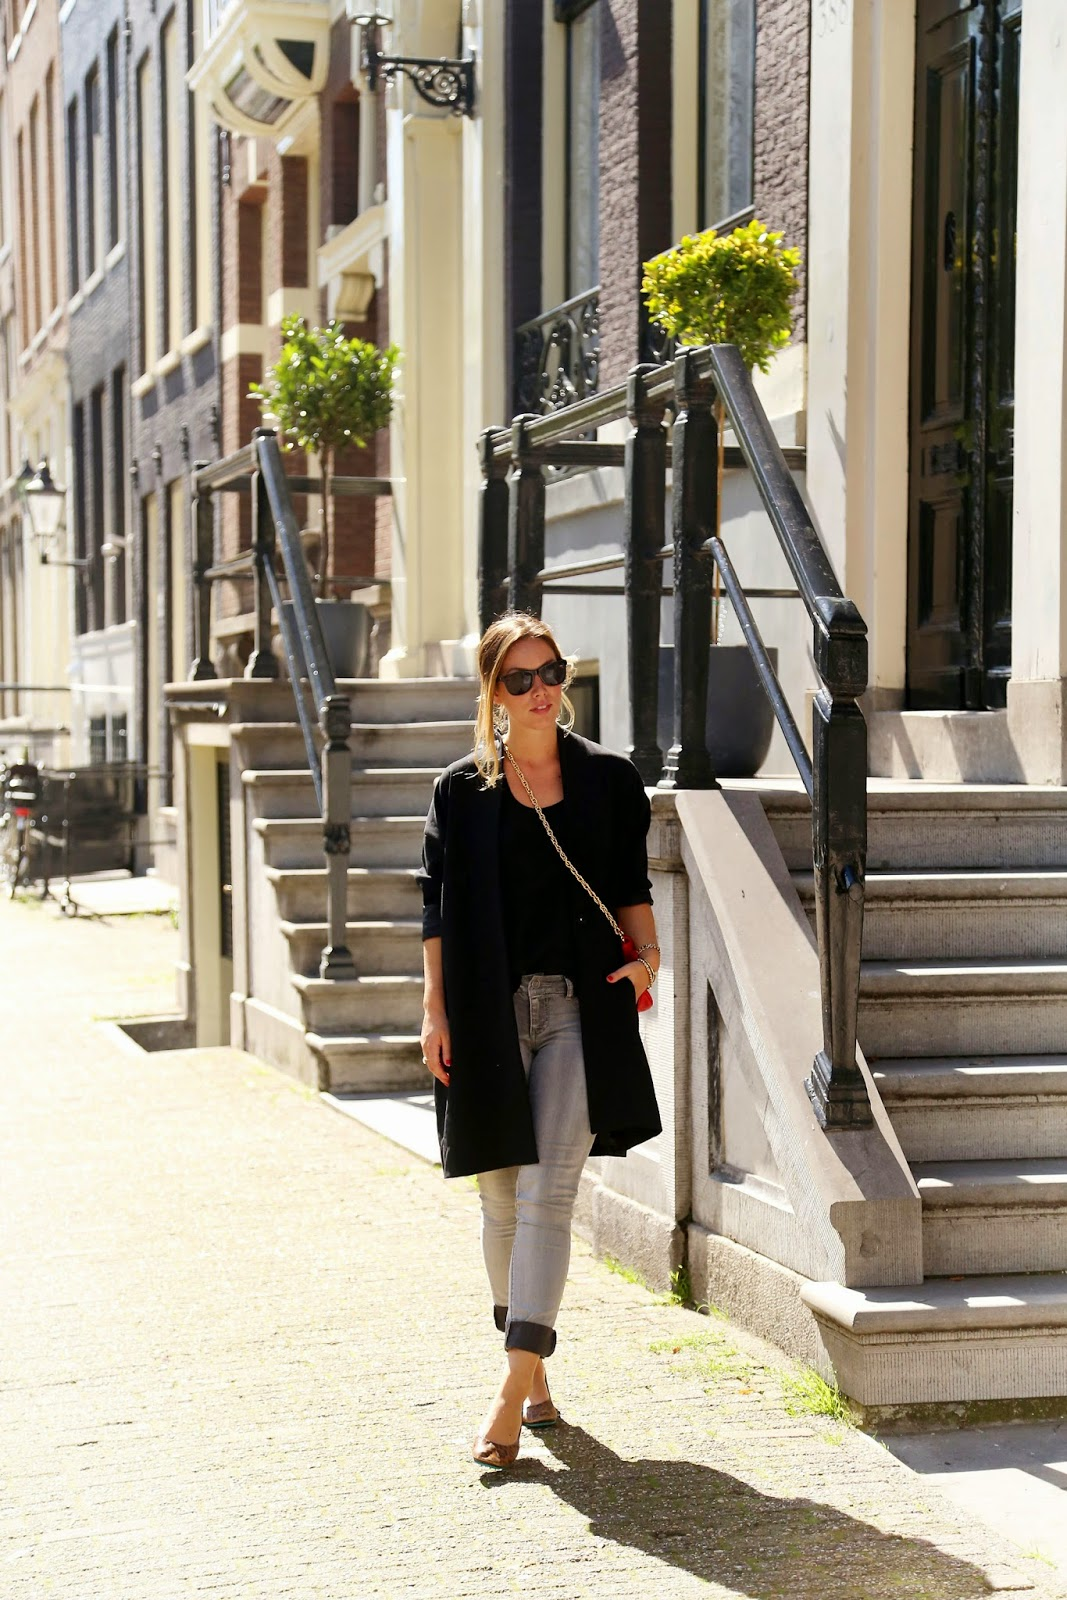 to vogue or bust, vancouver style blog, vancouver fashion blog, vancouver fashion, vancouver style, canadian fashion blog, canadian style blog, canadian travel blog, travel to amsterdam, what to wear in the fall in amsterdam, what to wear in amsterdam, amsterdam street style, oak and fort jacket, maurices jeggings, how to style jeggings, joe fresh silk tank top, mary nichols bag, tieks leopard flats, what to wear on a bike in amsterdam, dutch street style, top fashion blog, top style blog, best fashion blog, best style blog